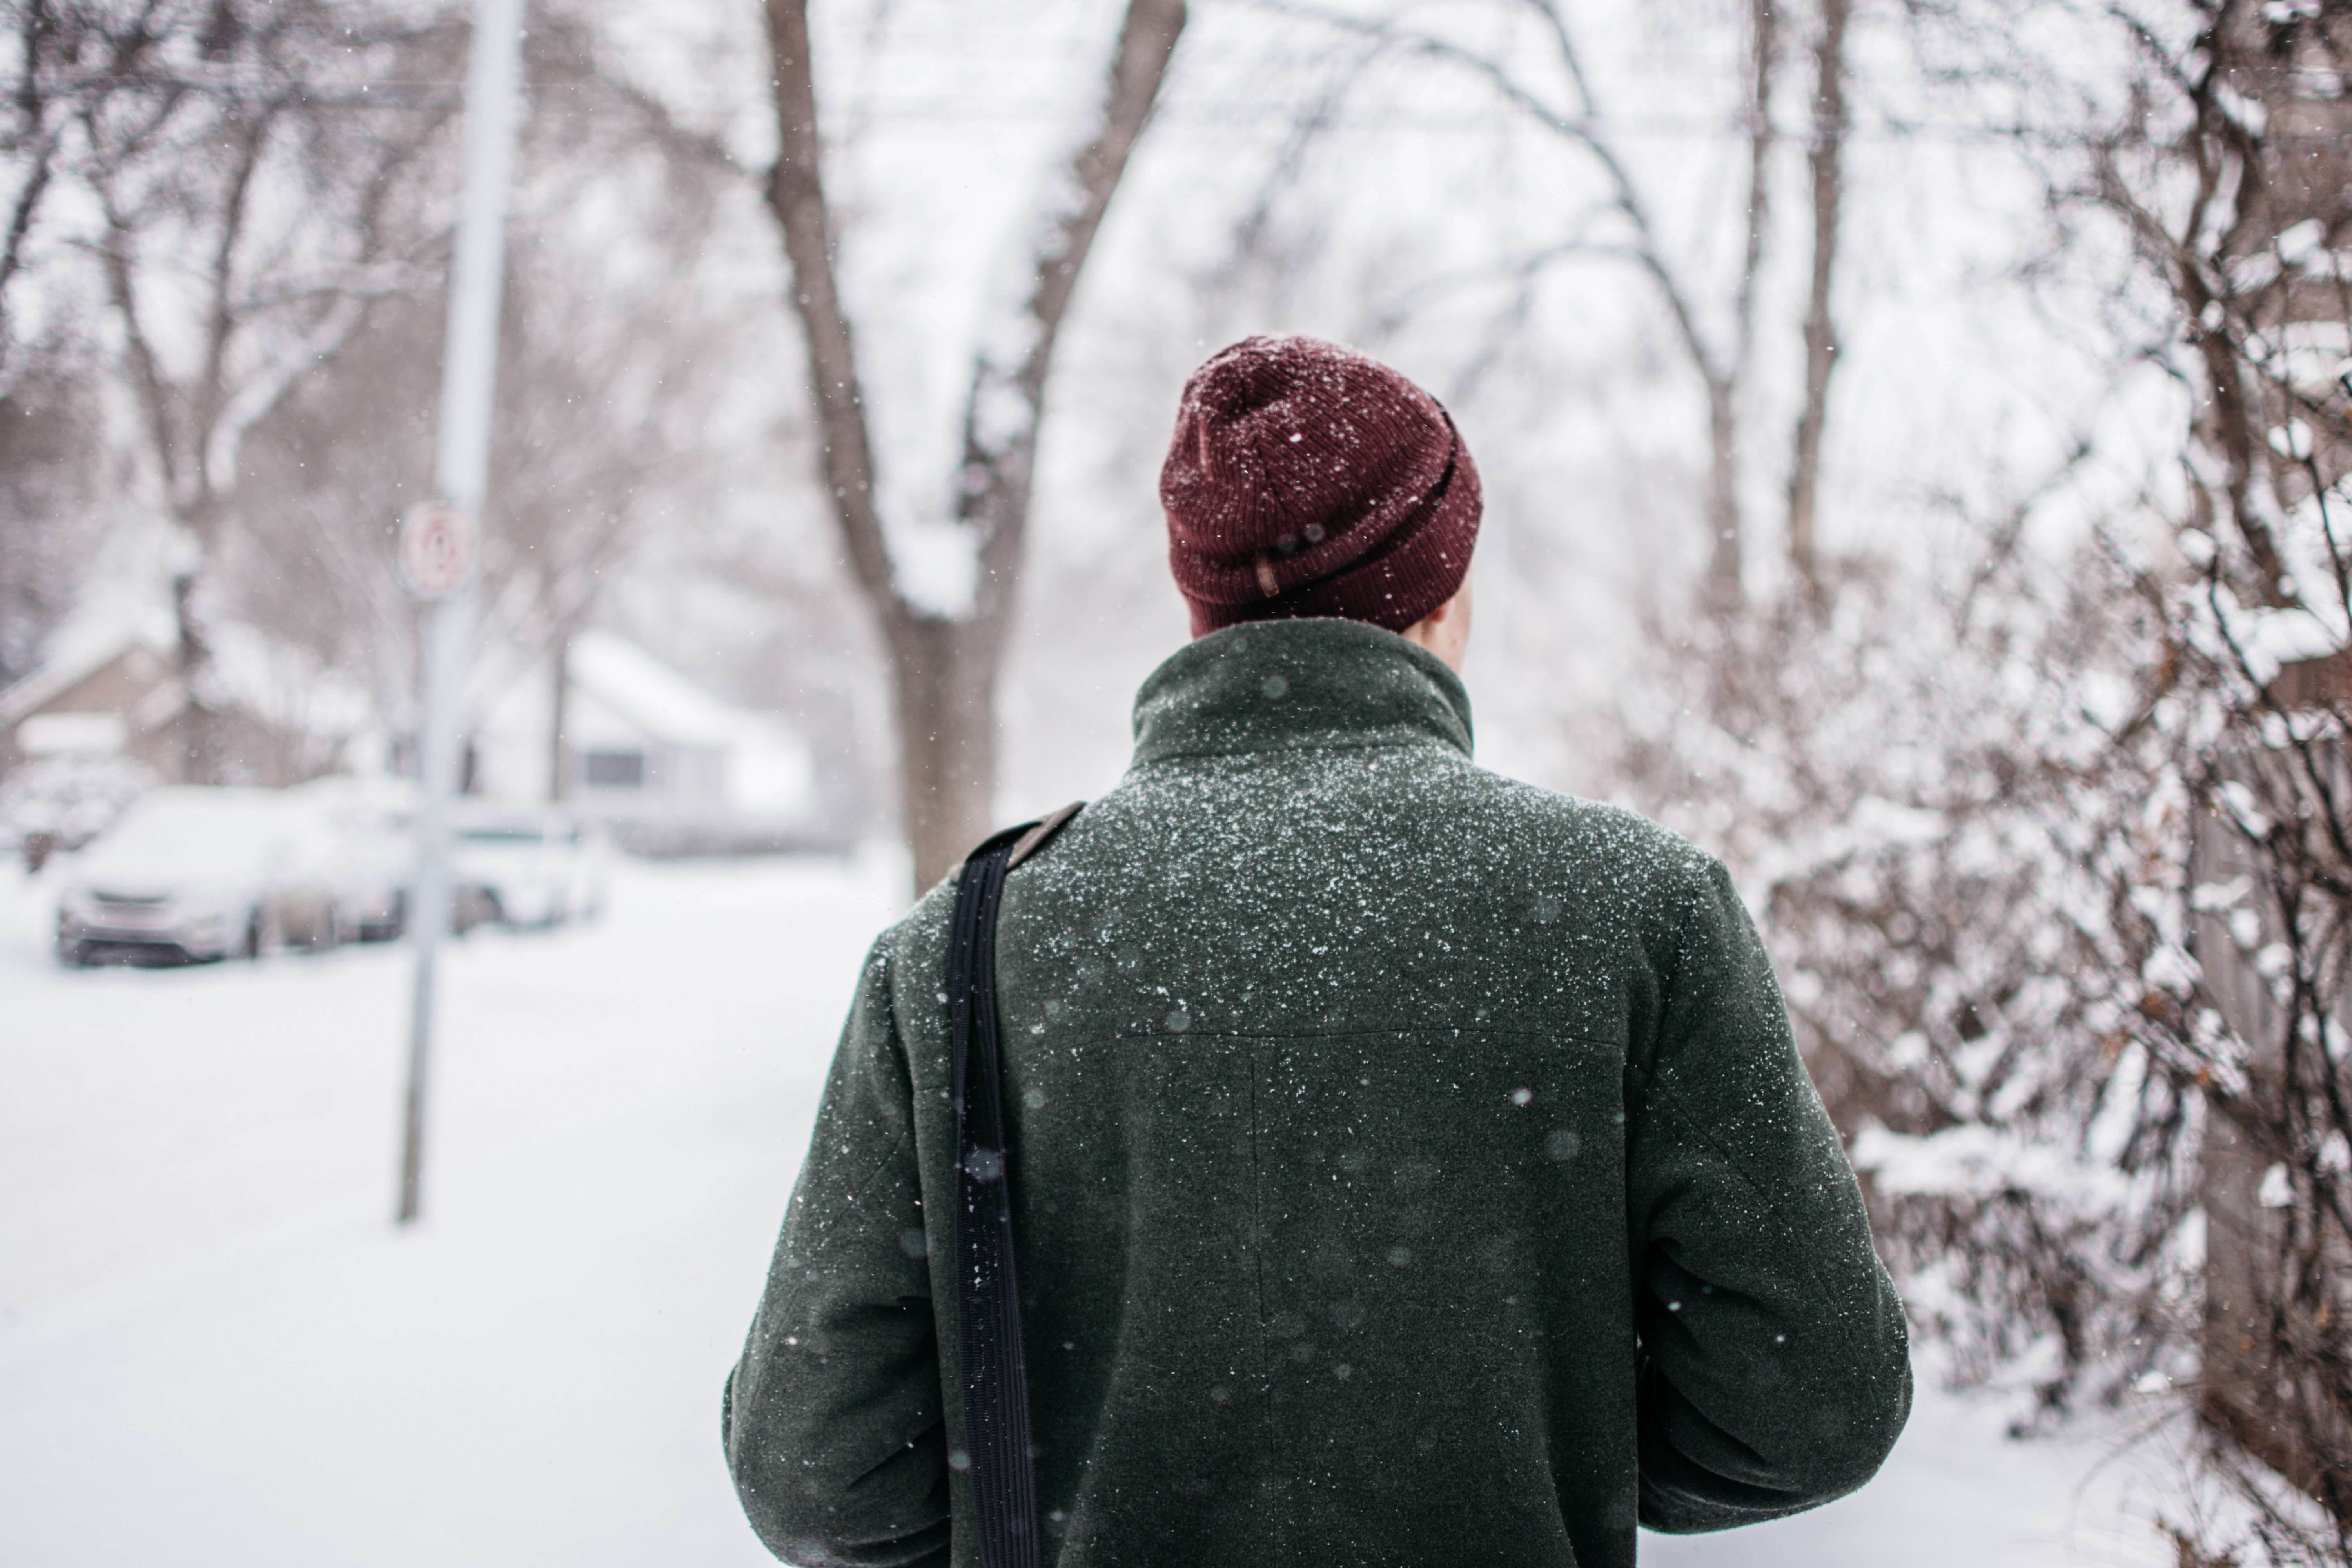 person in red knit cap and green top looking at trees with snow